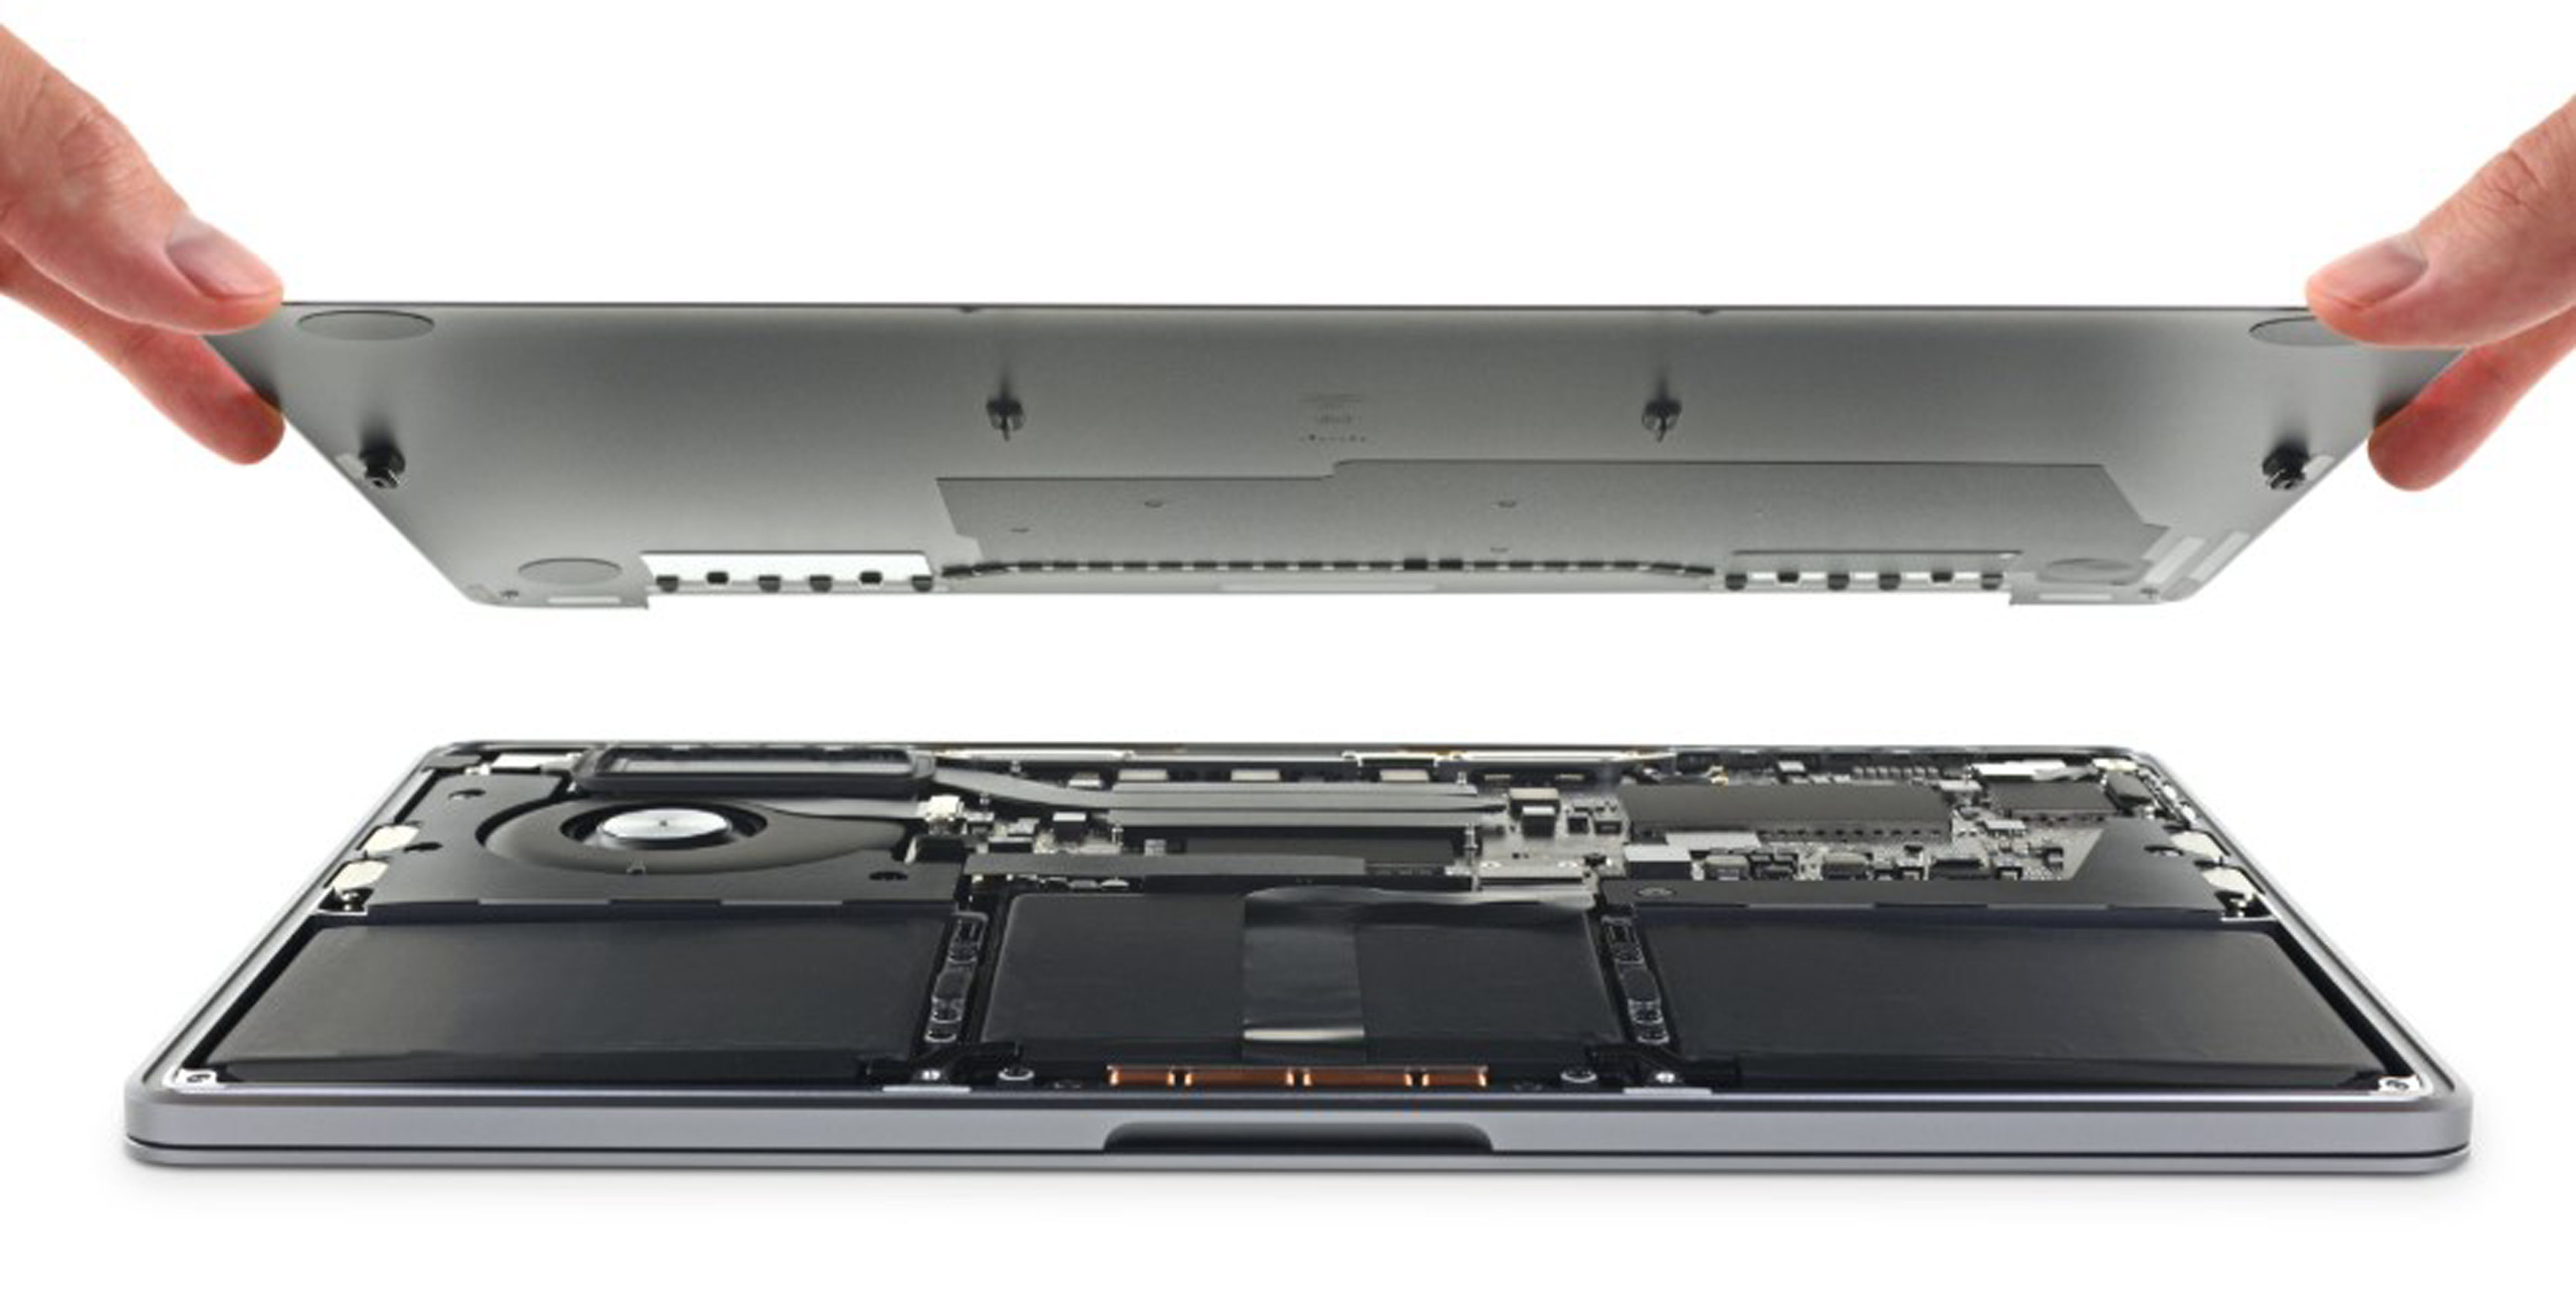 iFixit tore down the new base model MacBook Pro